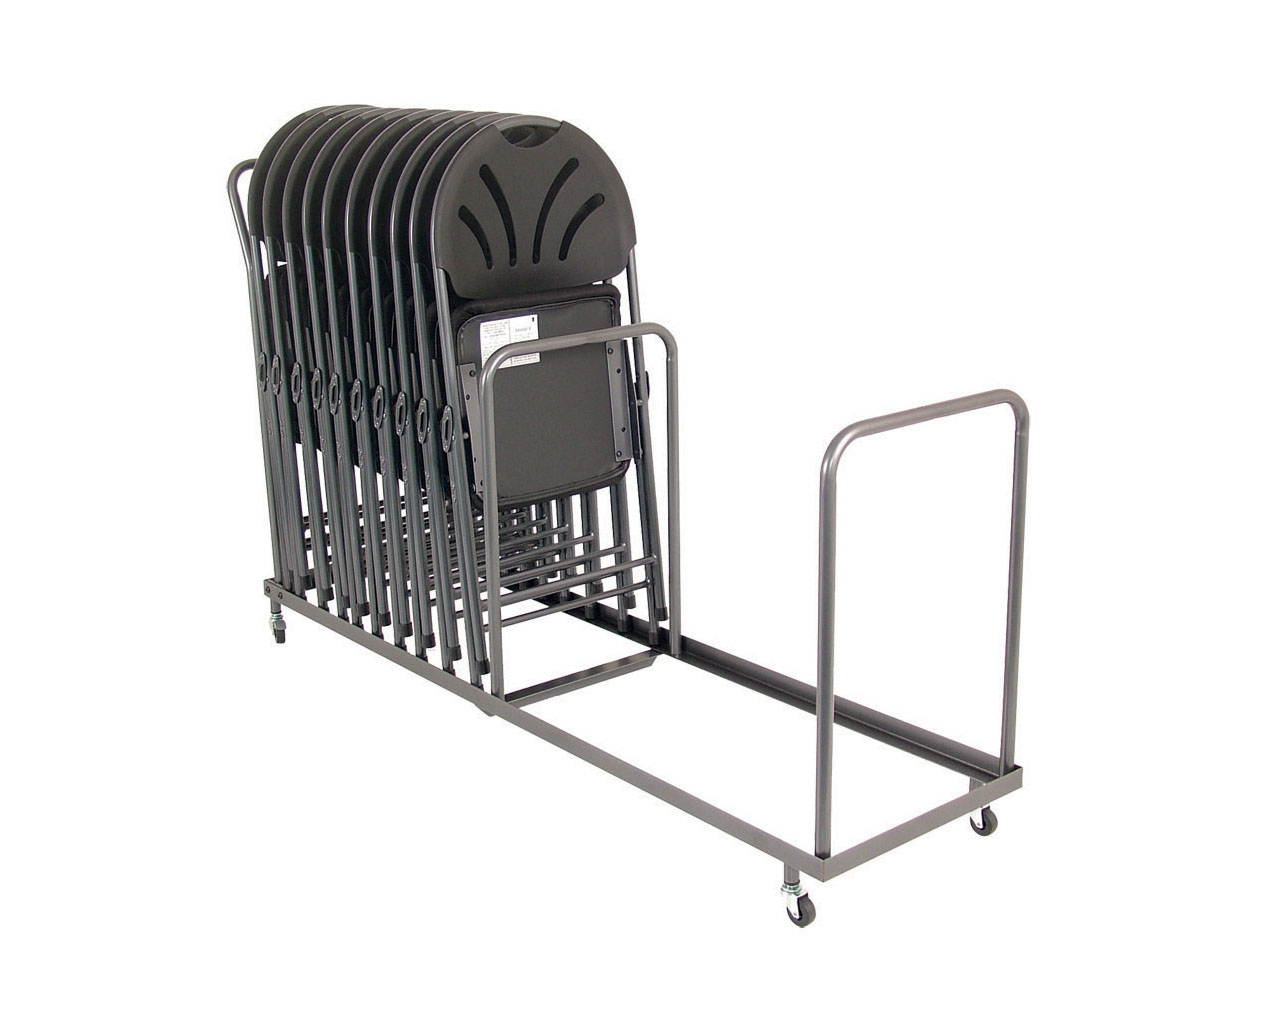 Linkable Folding Chair Dolly Source Office Furniture